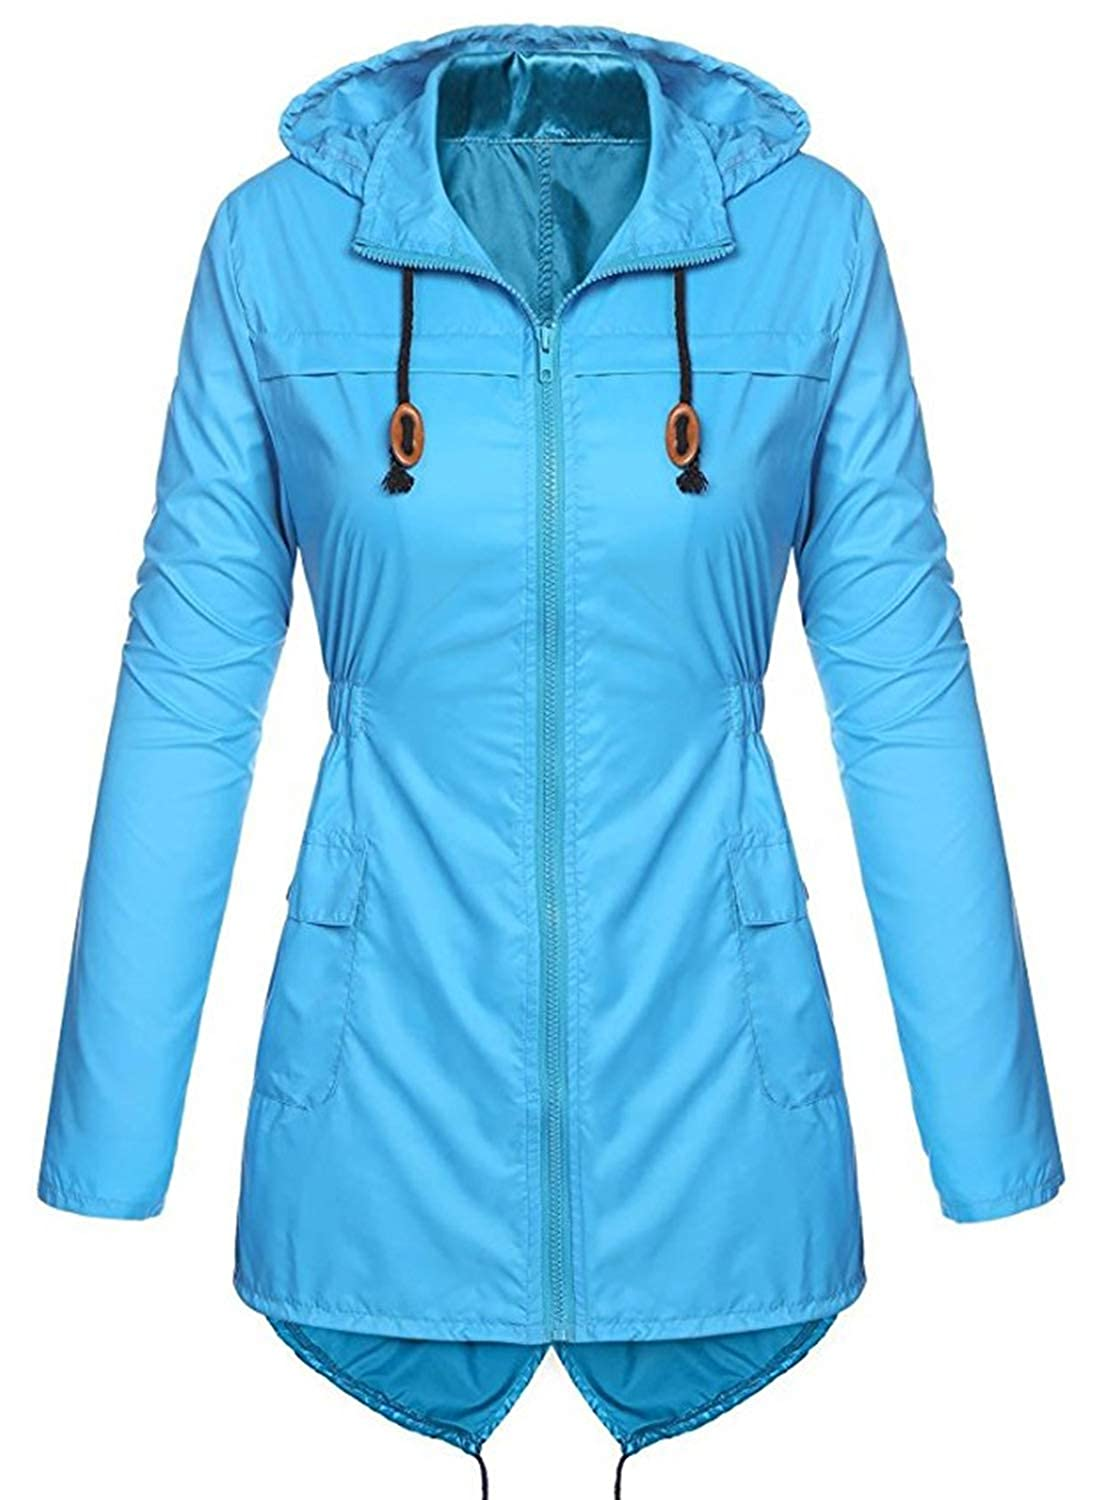 FUTURINO Damen Outdoor Regenjacke Winddicht Wasserdicht Windmantel Kapuzenjacke Windjacke Outdoor Jacke